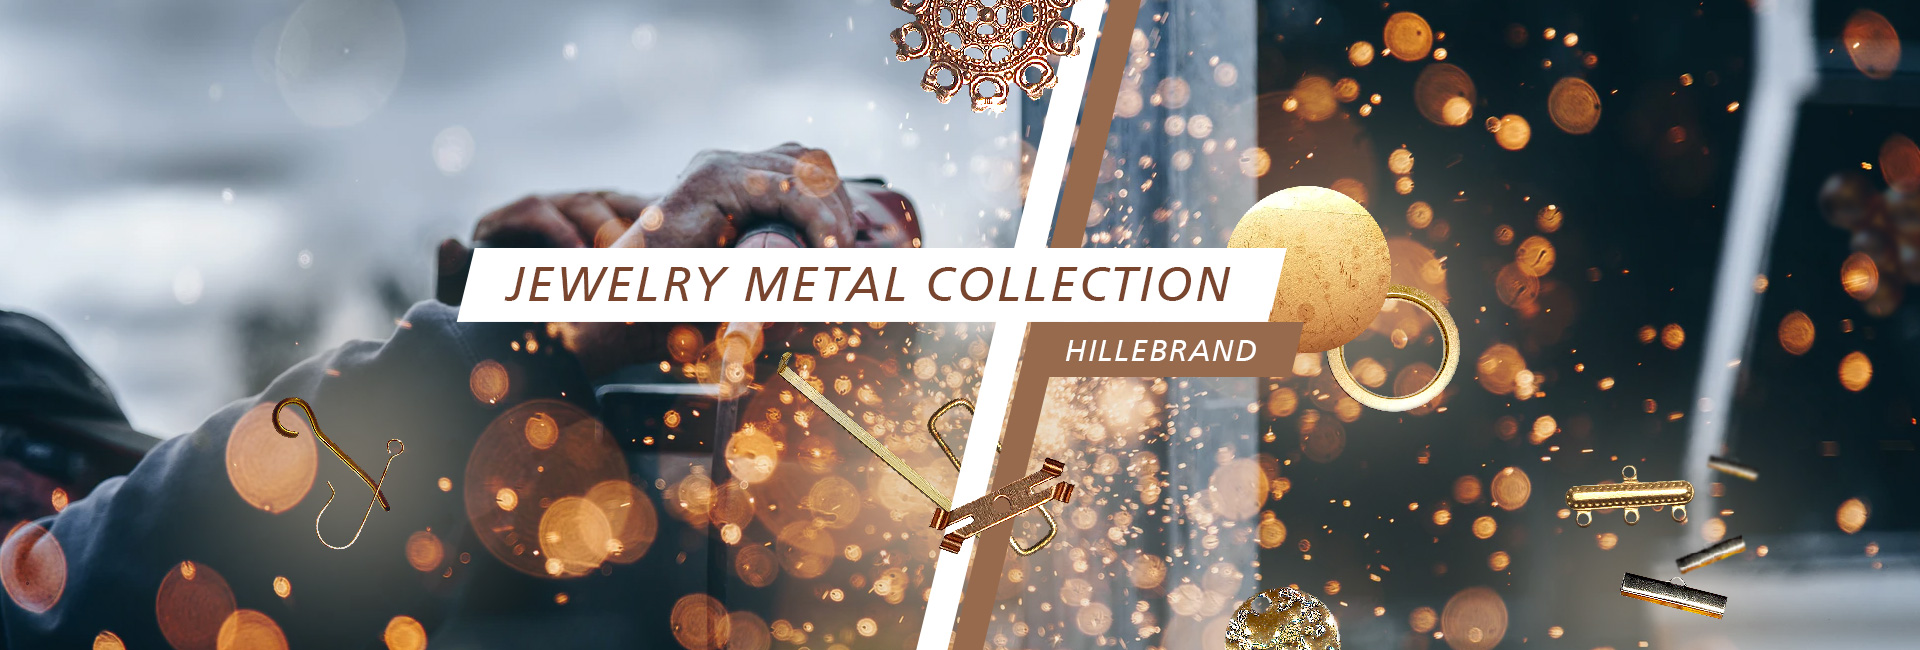 Hillebrand Metal Collection